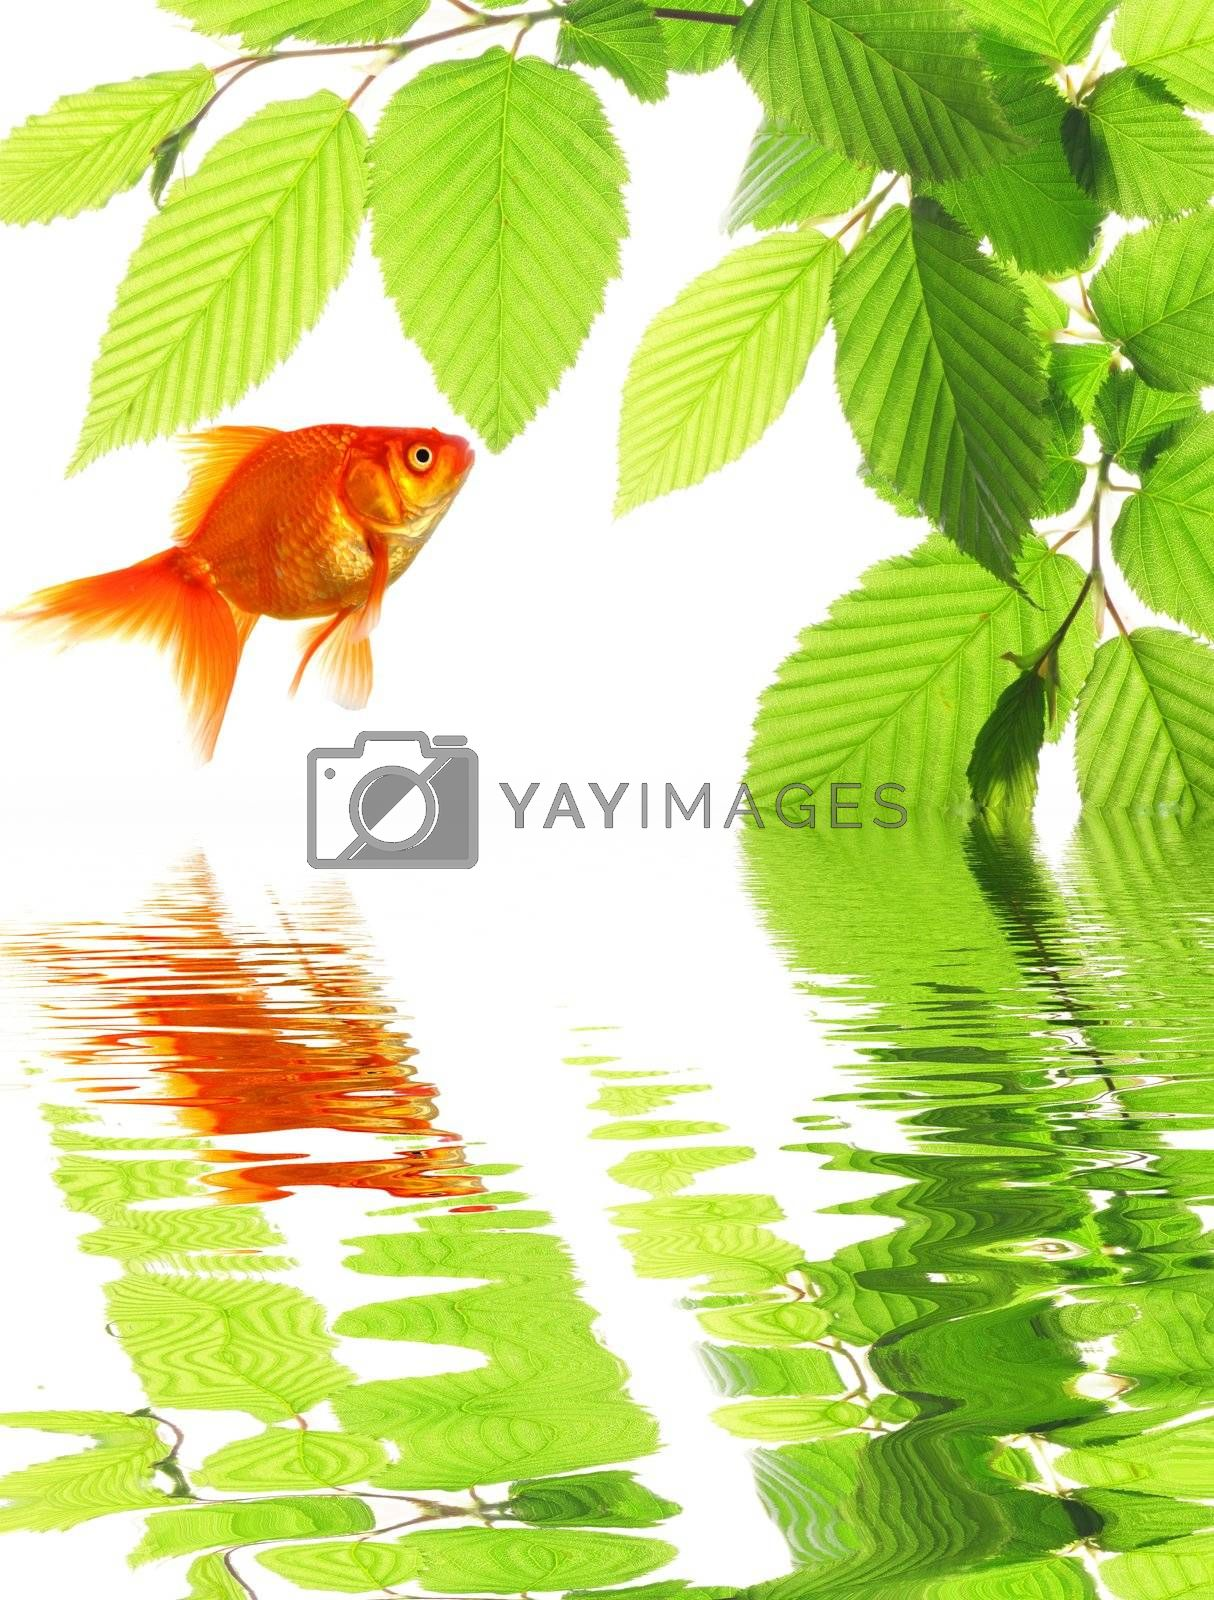 goldfish in nature with summer leaves and water reflection showing eco ecology or environment concept